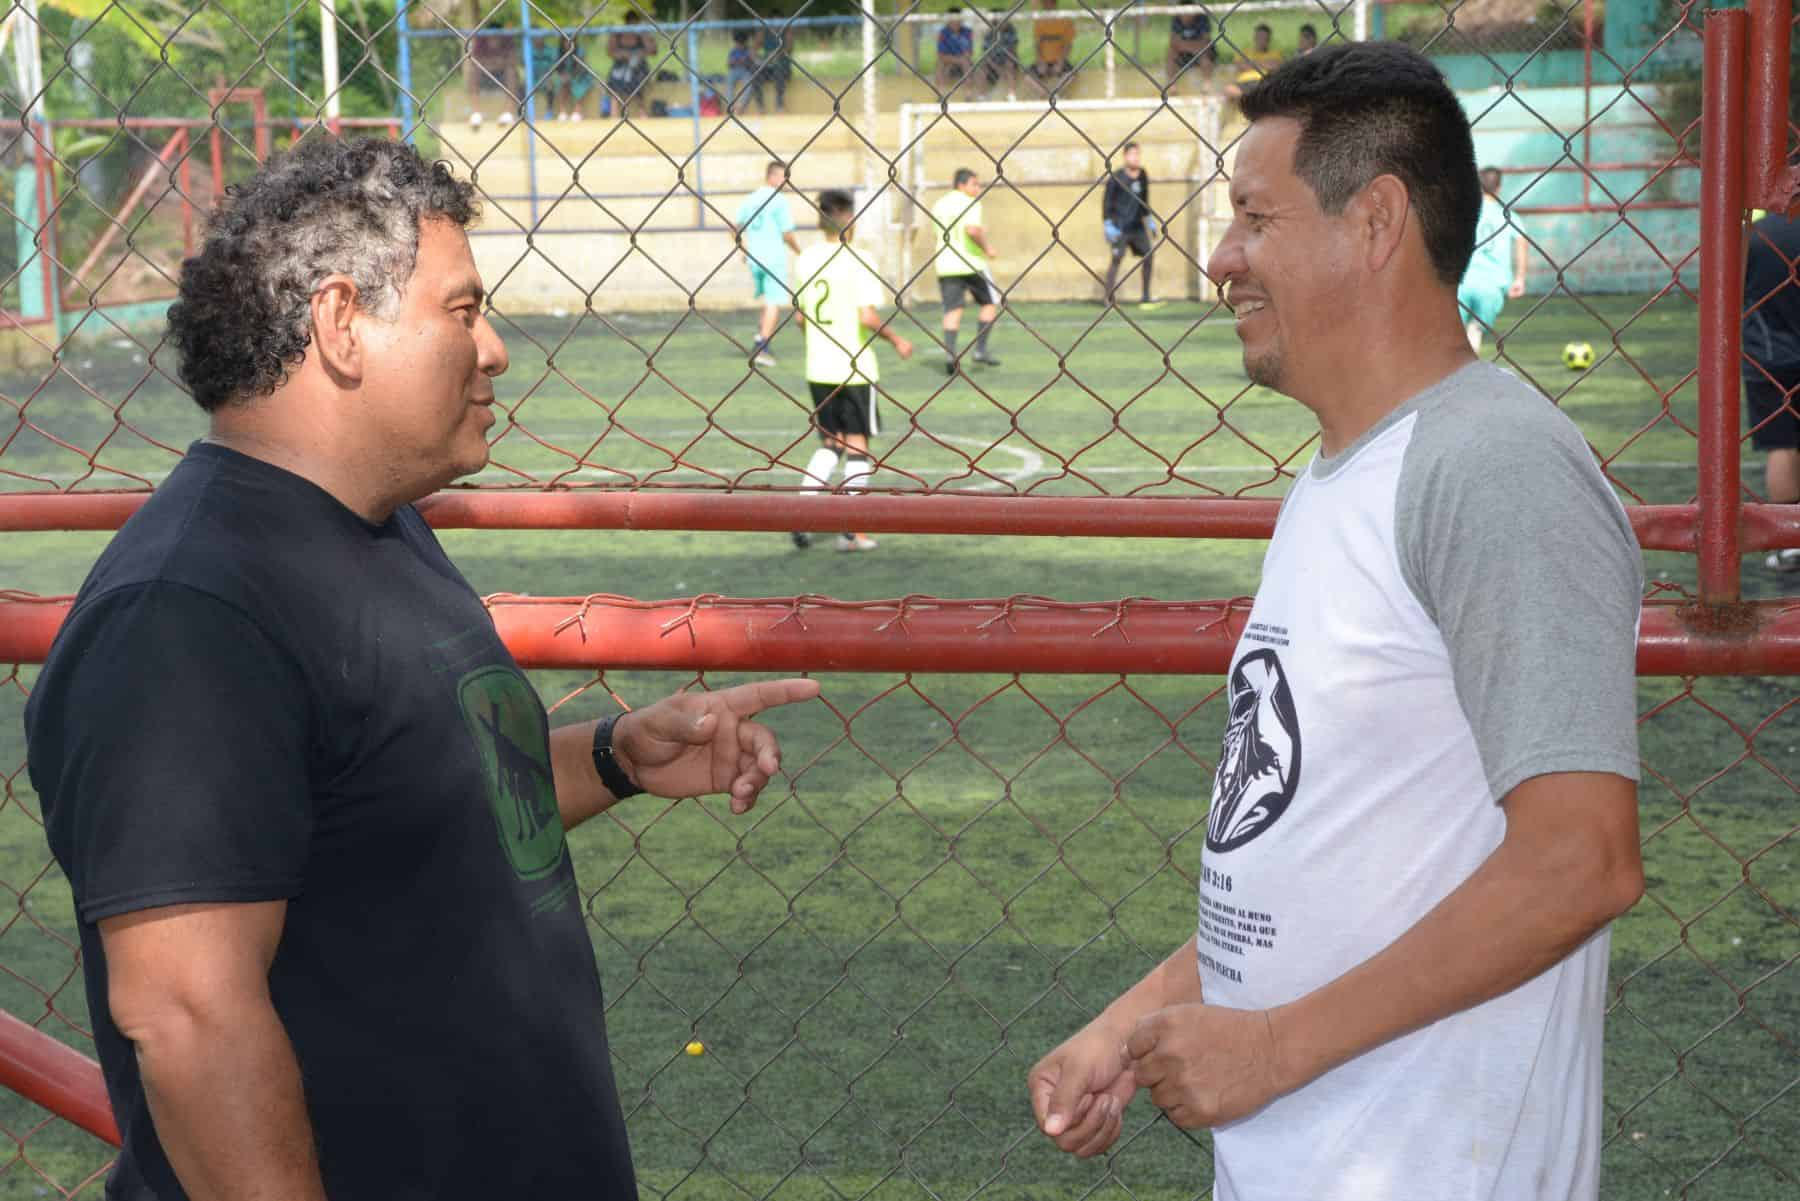 Jose Victor Dominguez (left), who operates our community development programs in El Salvador, speaks with Carlos Cruz, who oversees a Samaritan's Purse-sponsored soccer league.